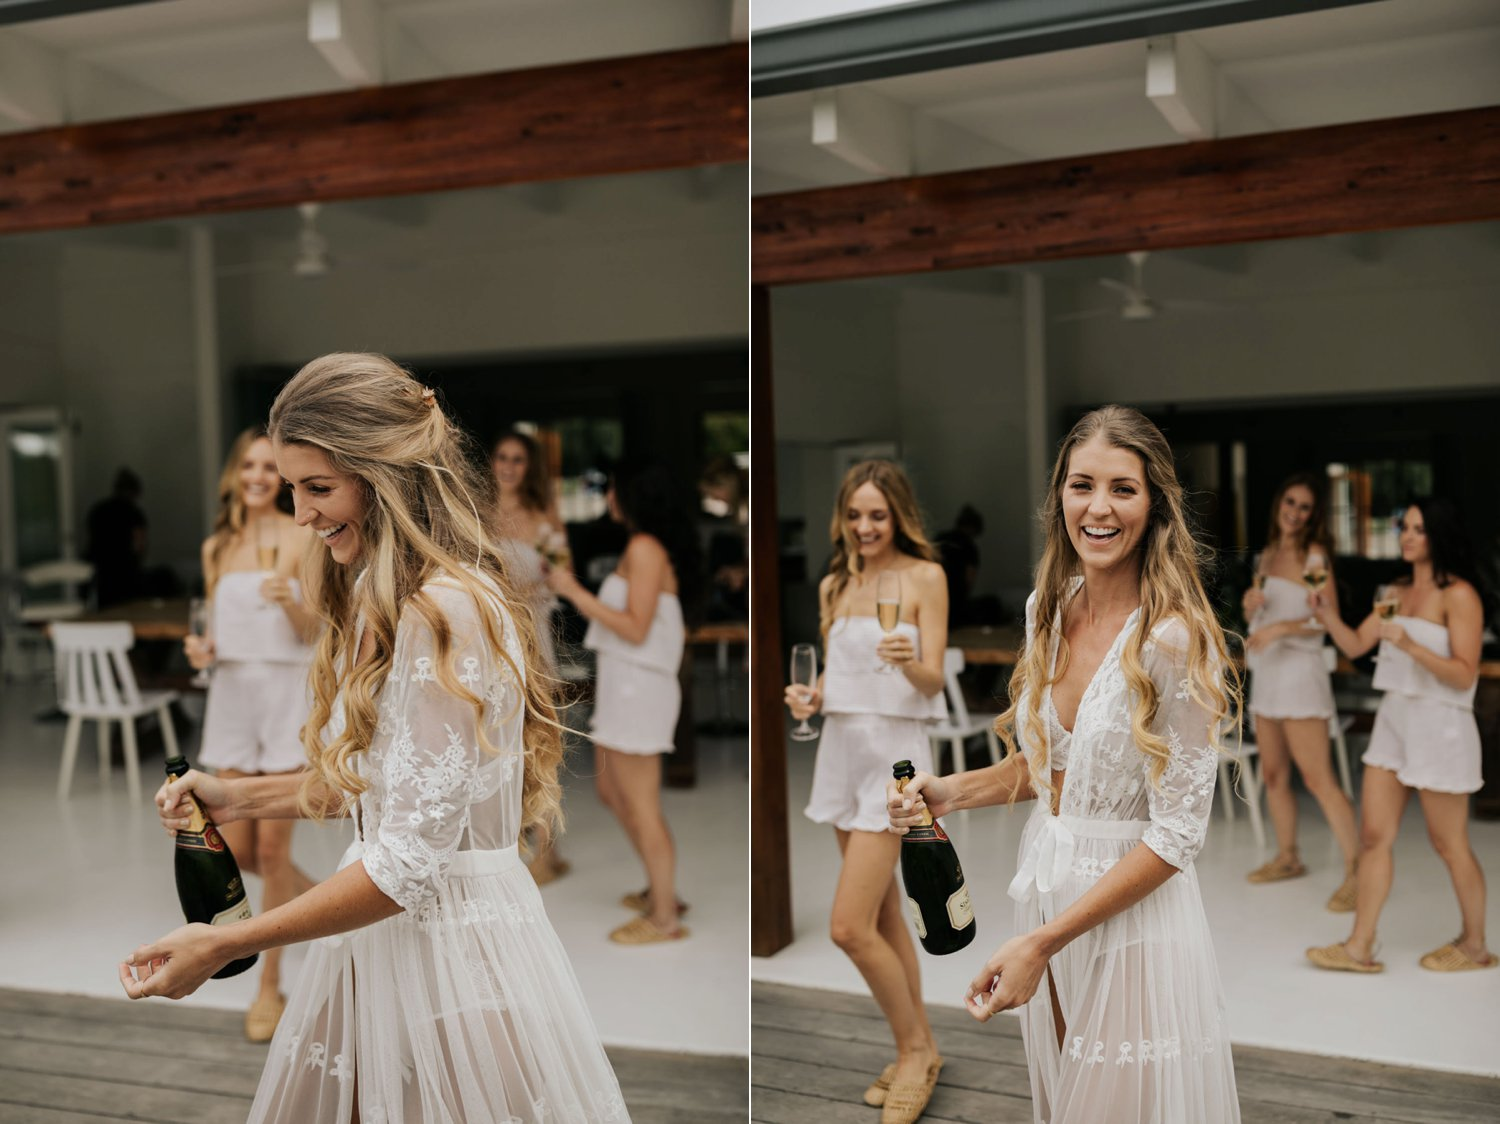 Boho bride with long curly hair dressed in white lace PJs and gown pops champagne with her bridesmaids